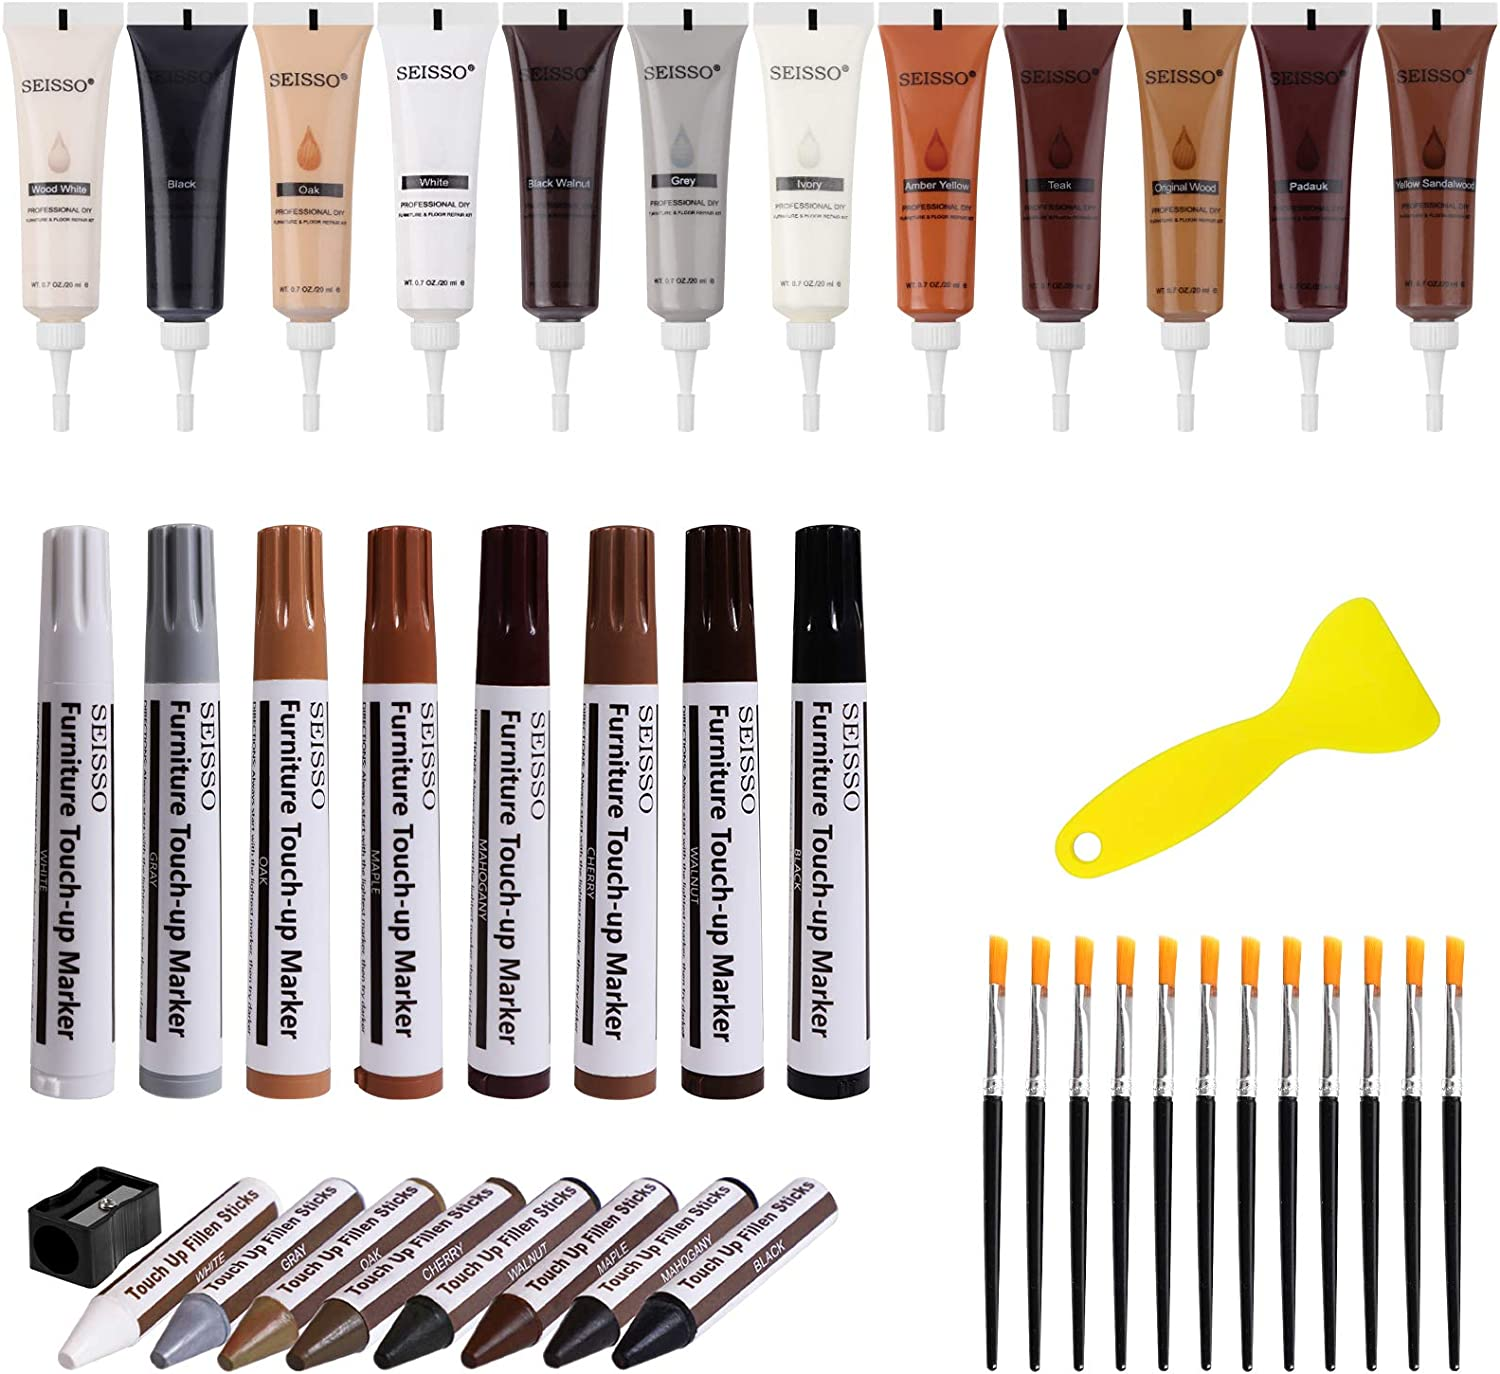 Wood Furniture Repair Kit and Fillers-Set of 28-Furniture Repair Wood Fillers, Markers and Wax Sticks-Used for The Repair of Wood Floor, Table, Bed, Cabinet, Chair-Stains and Scratches